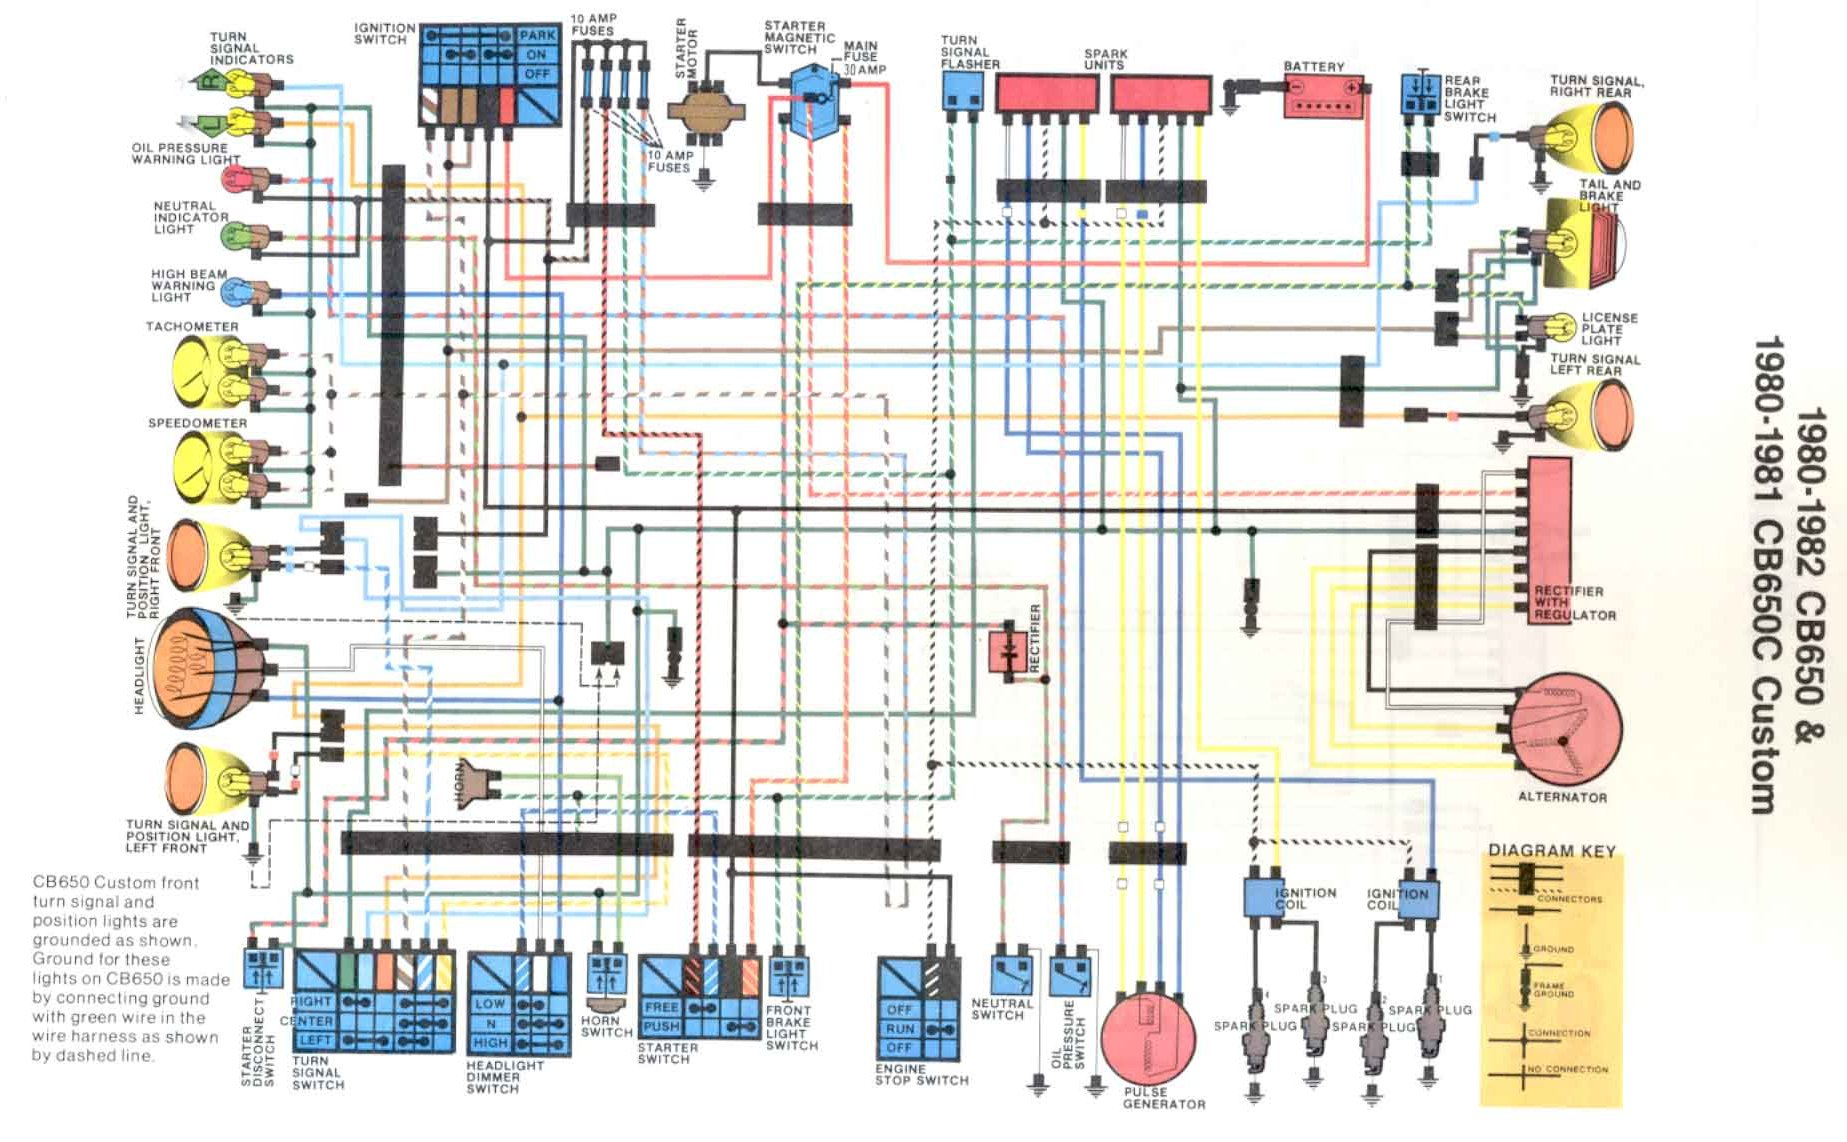 WD650 cb650 Wiring Harness Diagram at soozxer.org